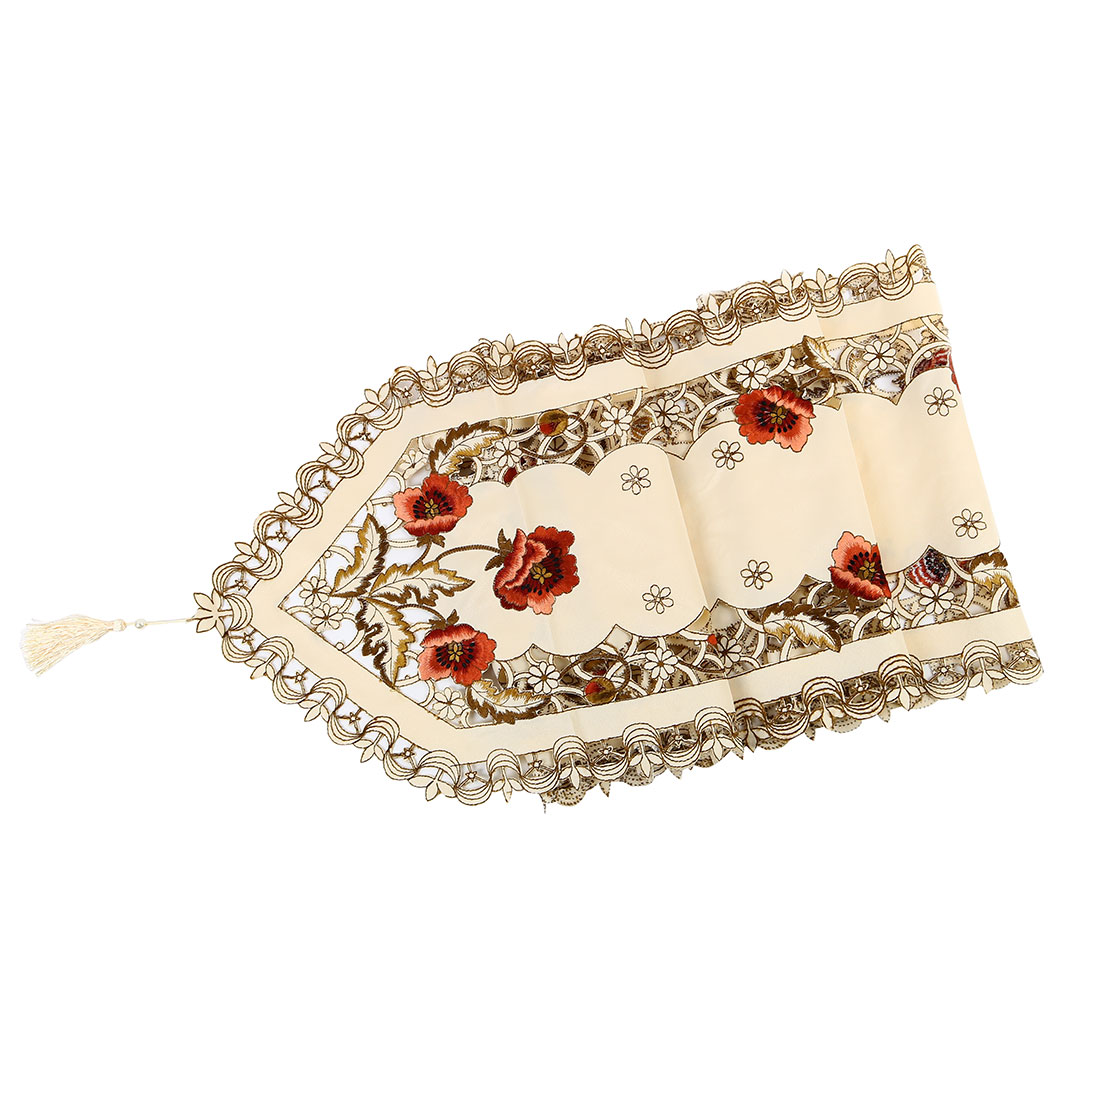 Vintage Flower Embroidery Table Runner Tassel Wedding Party Ornament Peony 40x150cm